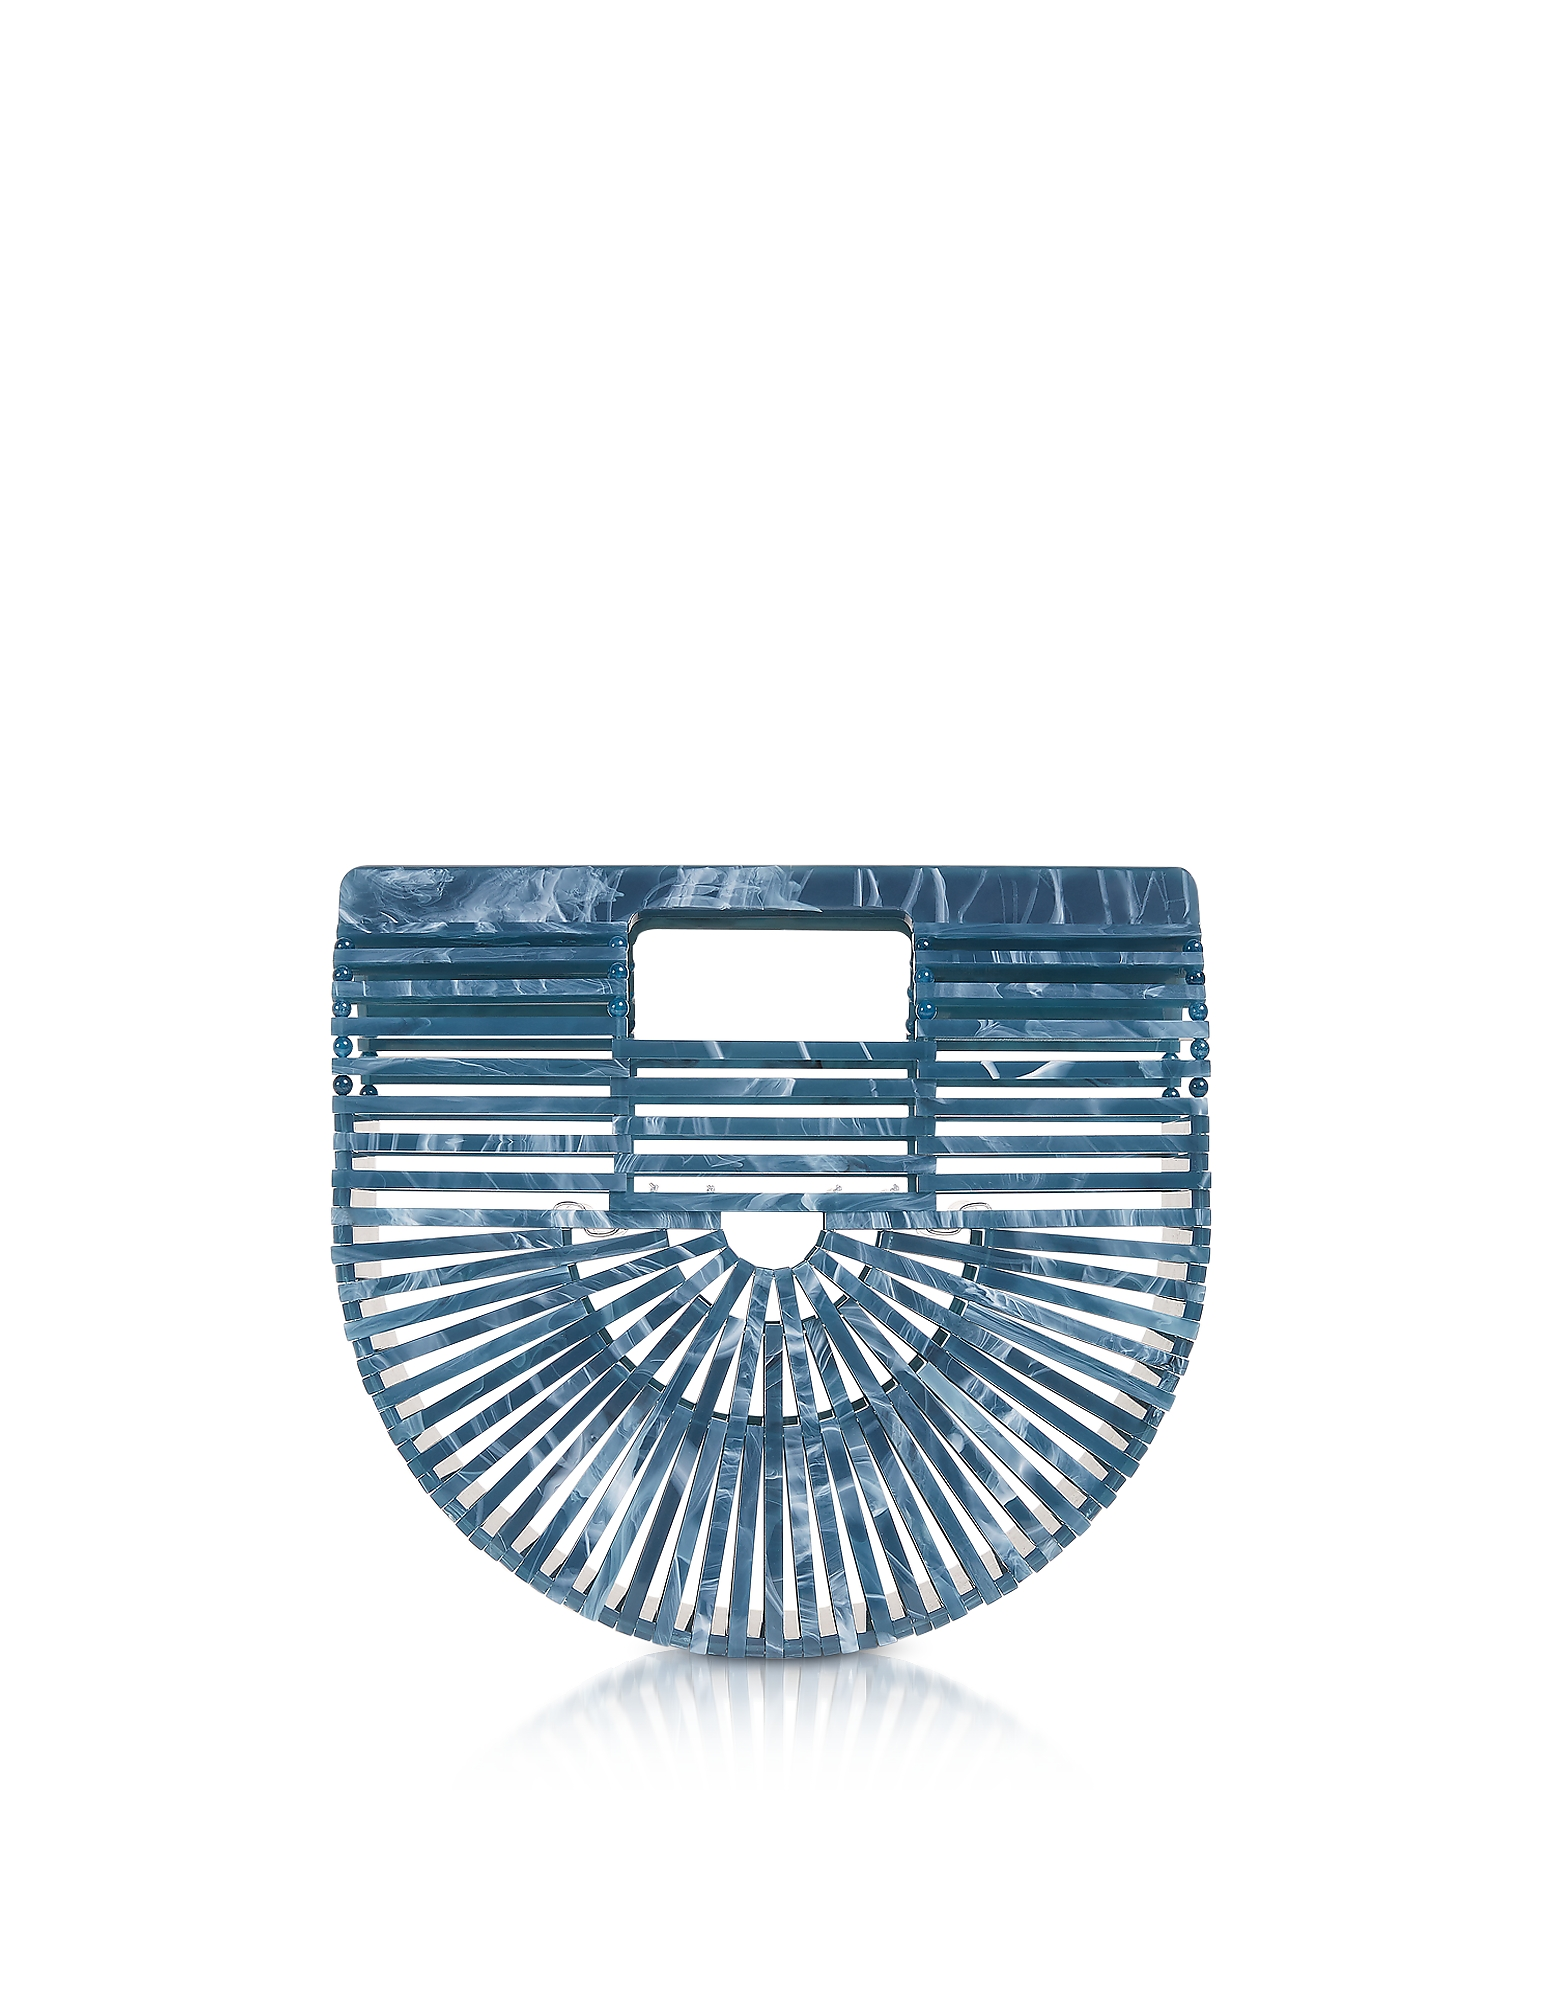 Cult Gaia Handbags, Lagoon Acrylic Mini Ark Bag